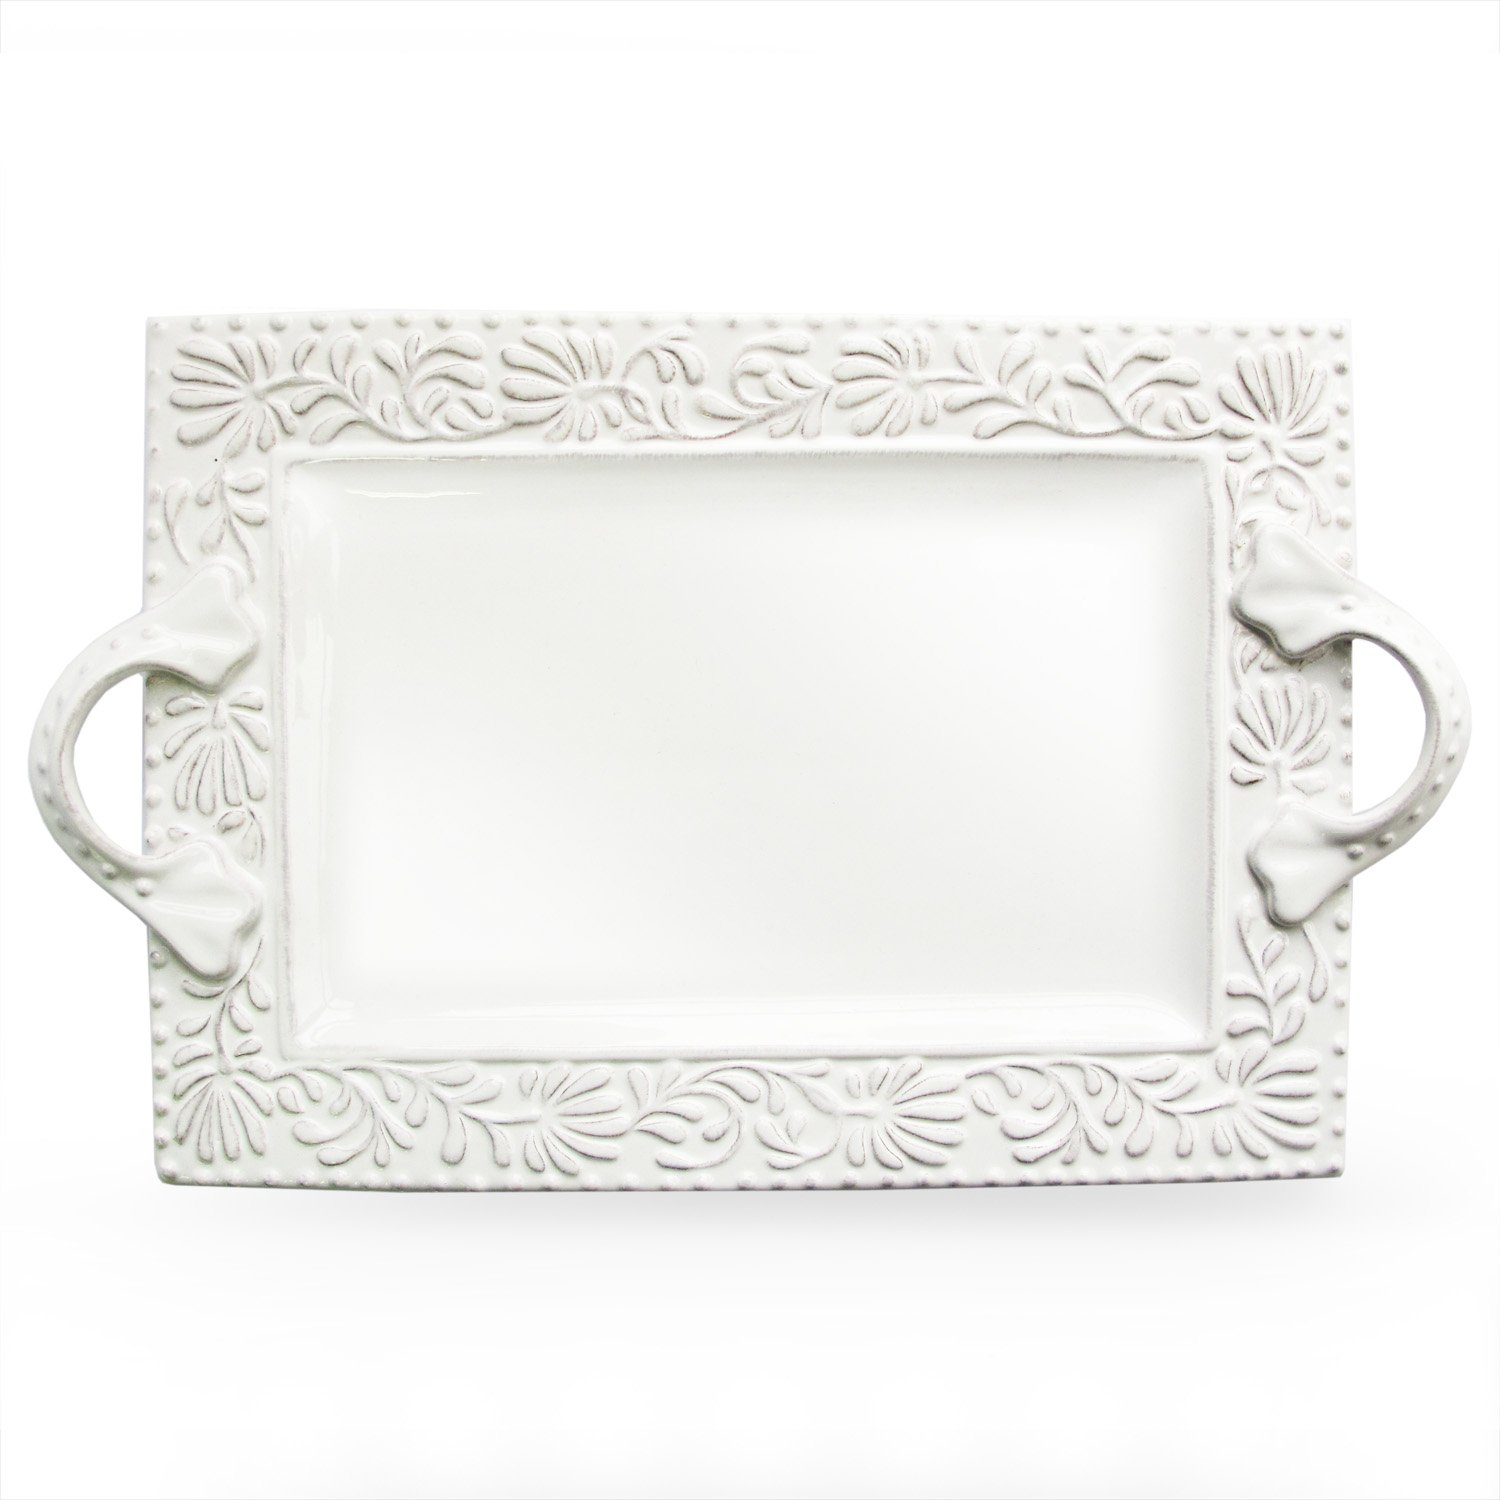 Christmas Tablescape Décor - White earthenware rectangle Bianca Leaf embossed handled platter by American Atelier